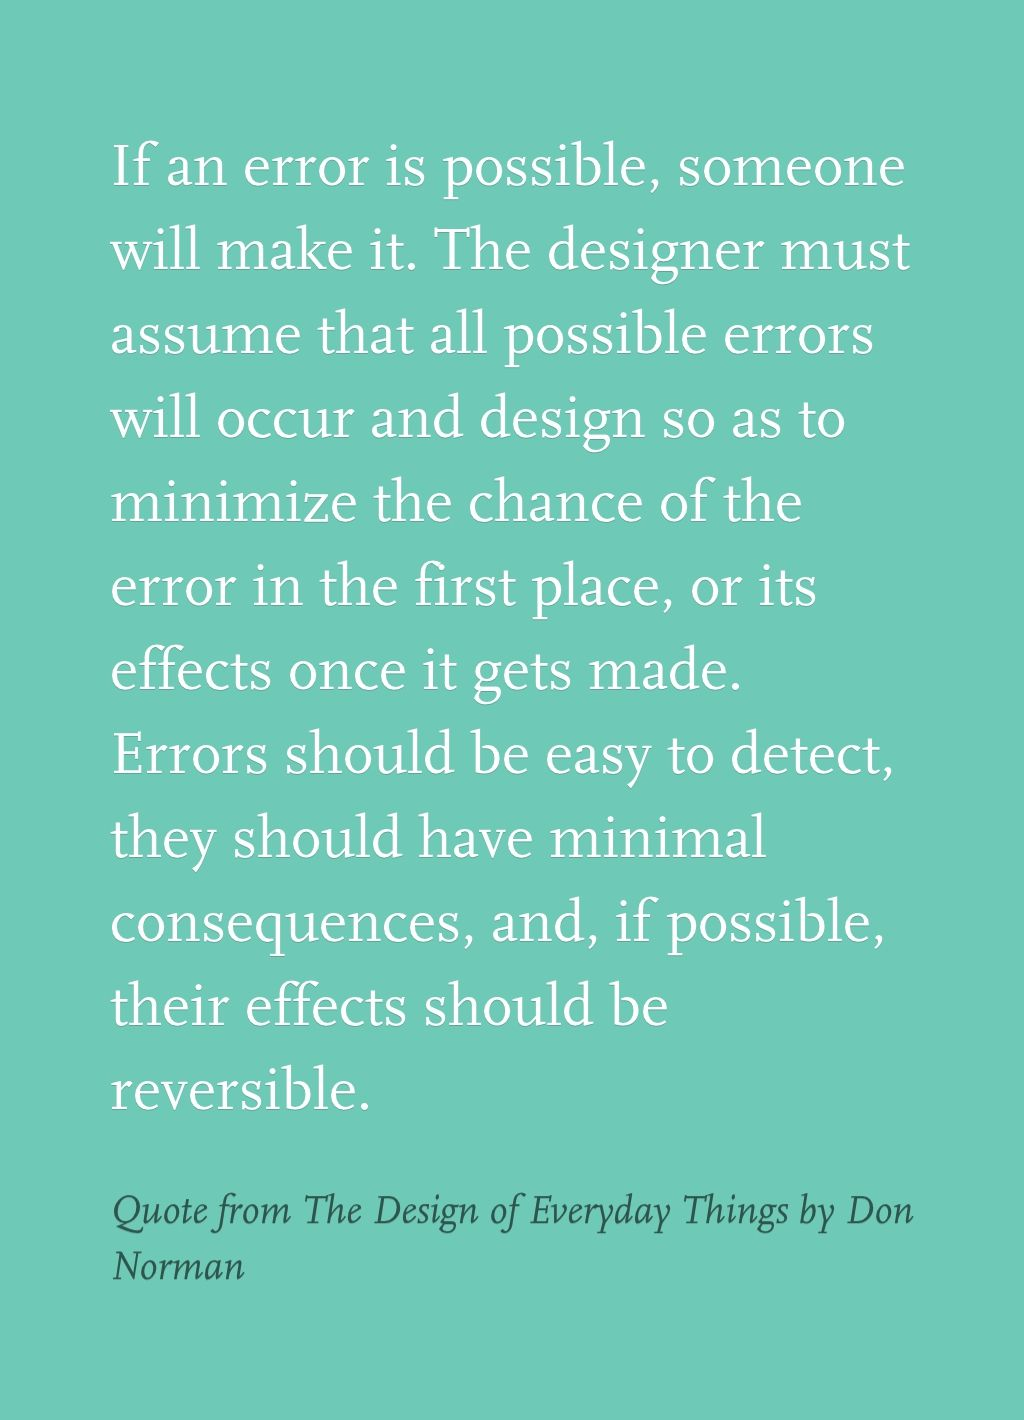 quote from the design of everyday things by don norman book